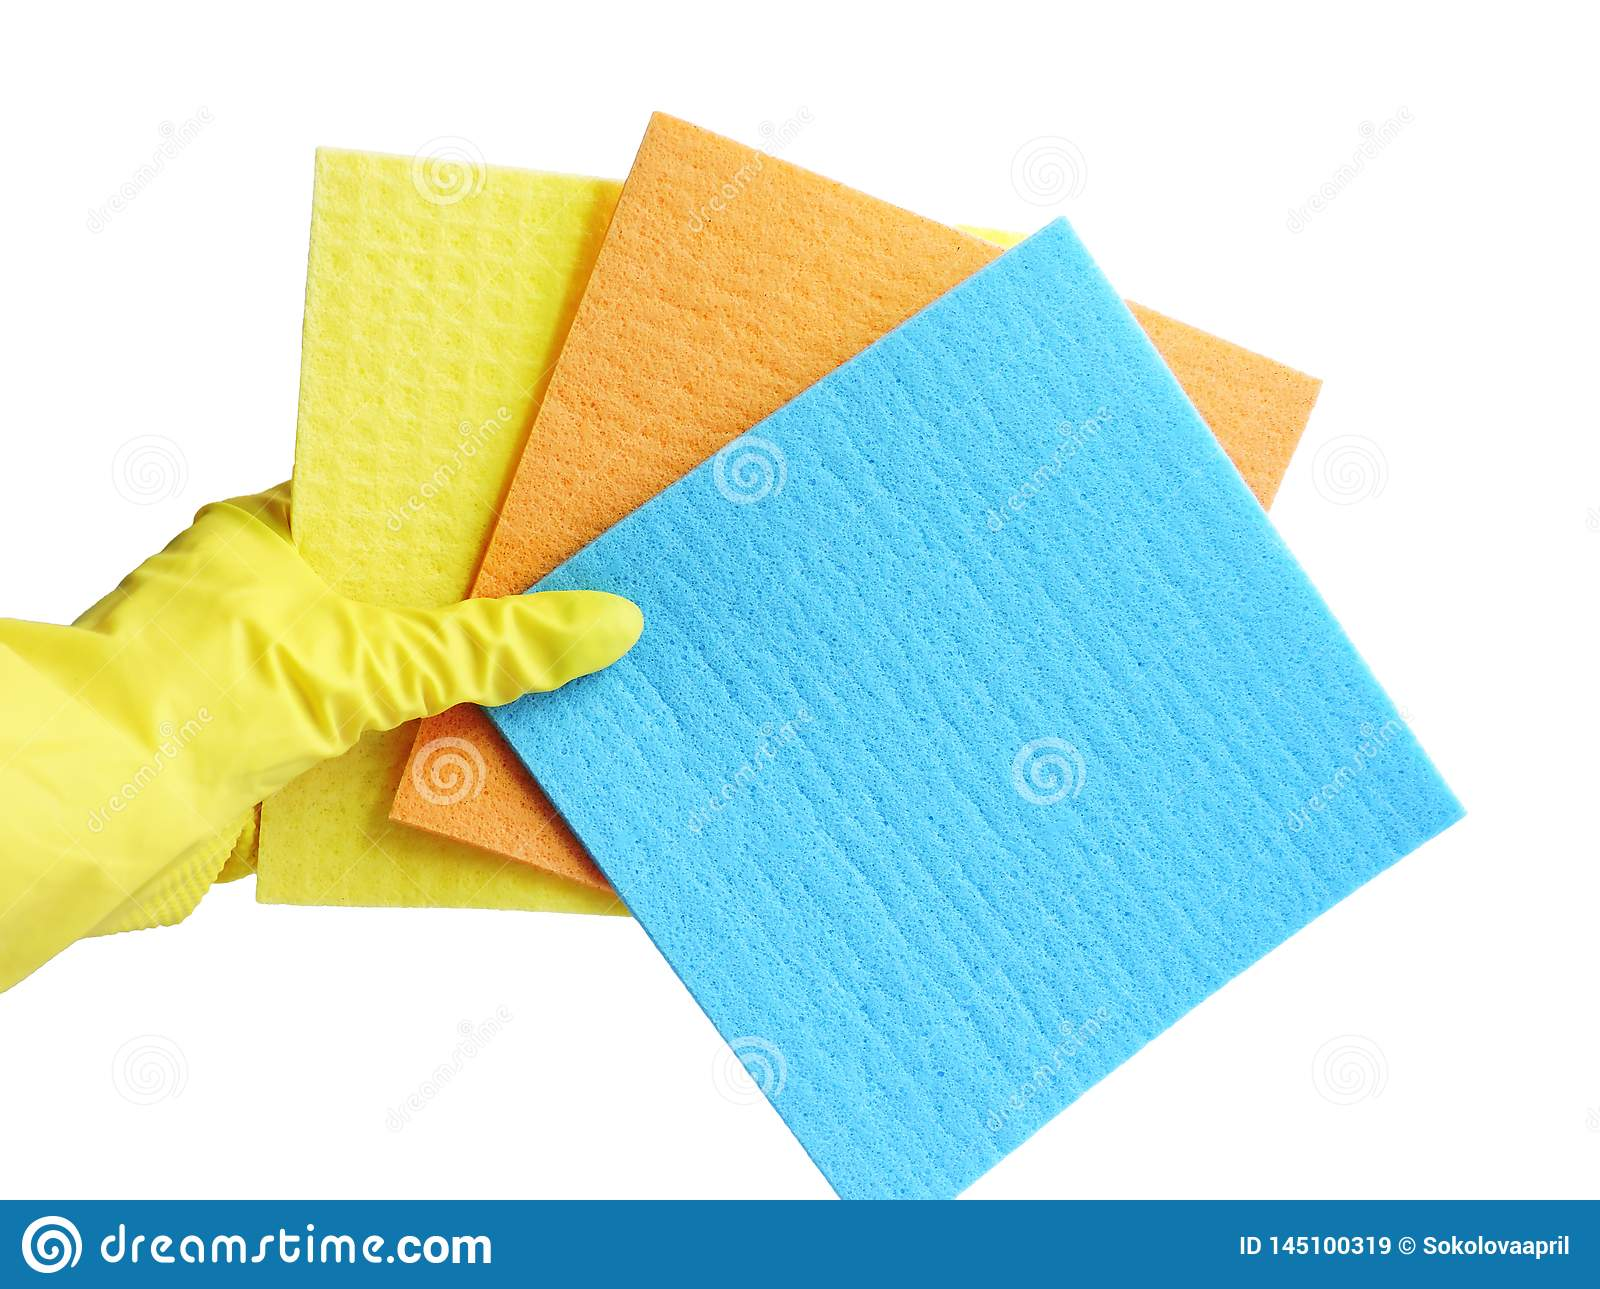 Getting started cleaning. Yellow rubber gloves for cleaning on white background .General or regular cleanup.